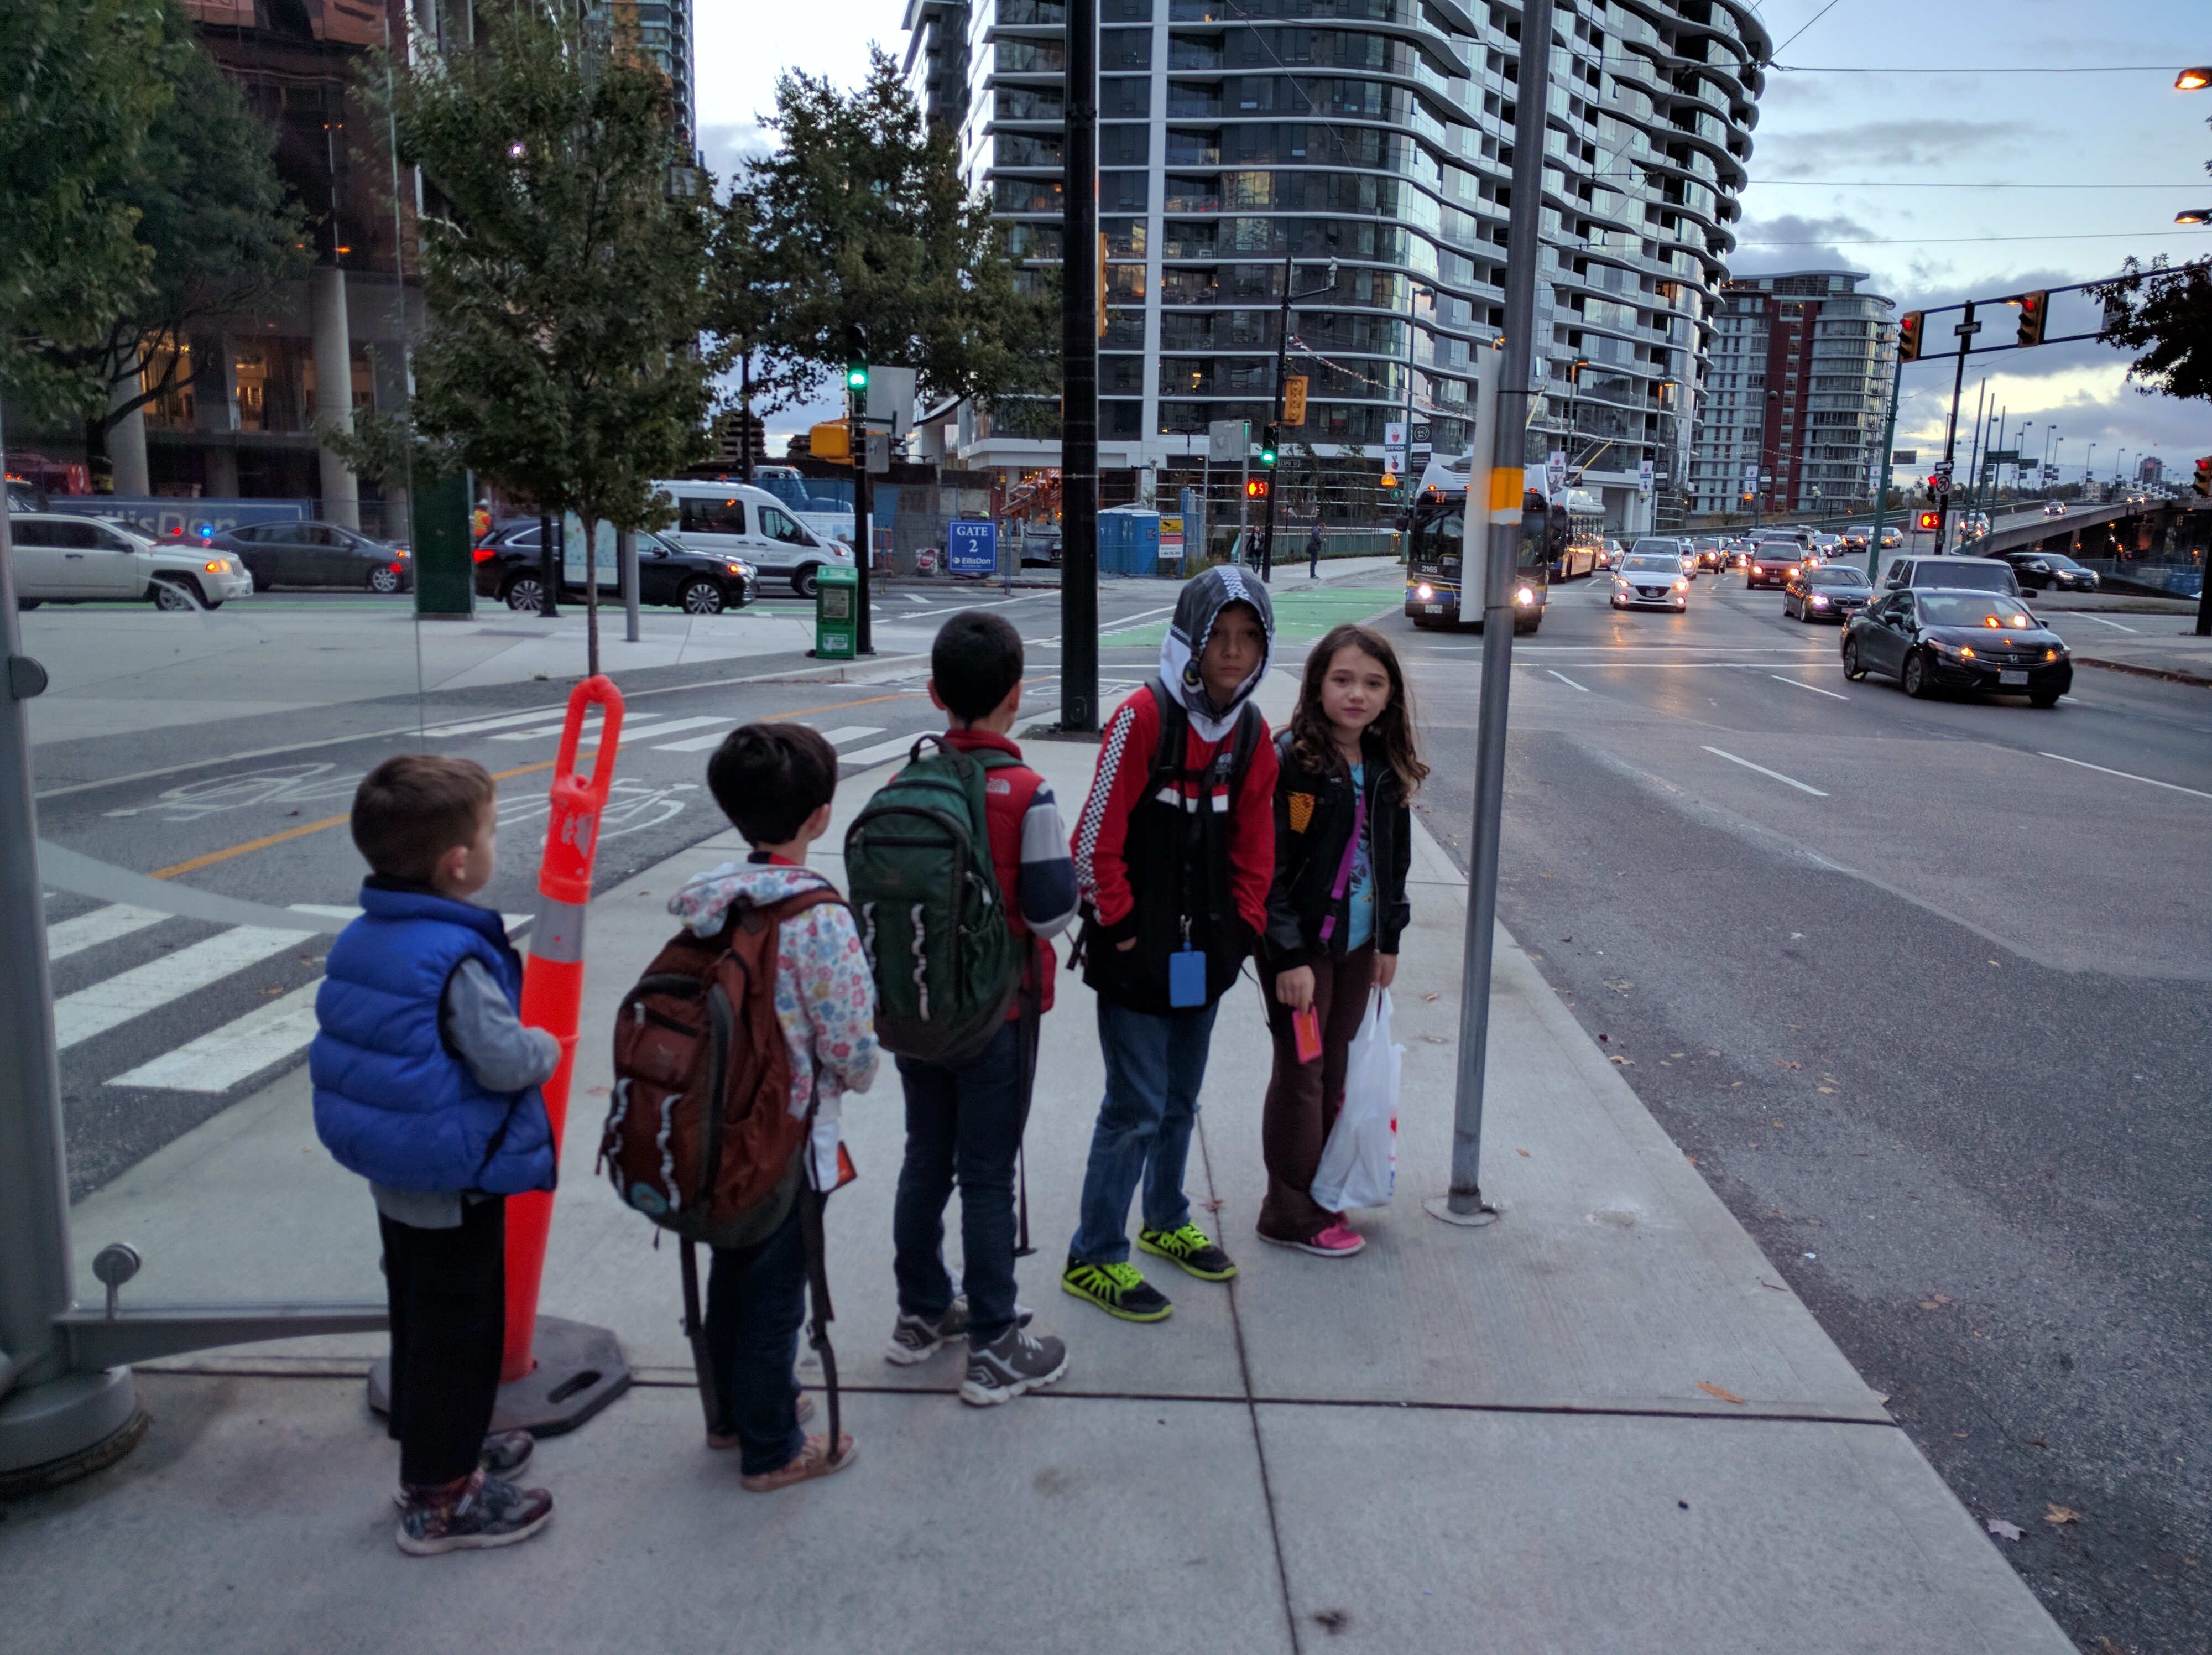 The Kids Queued Up To Get On Bus In Morning